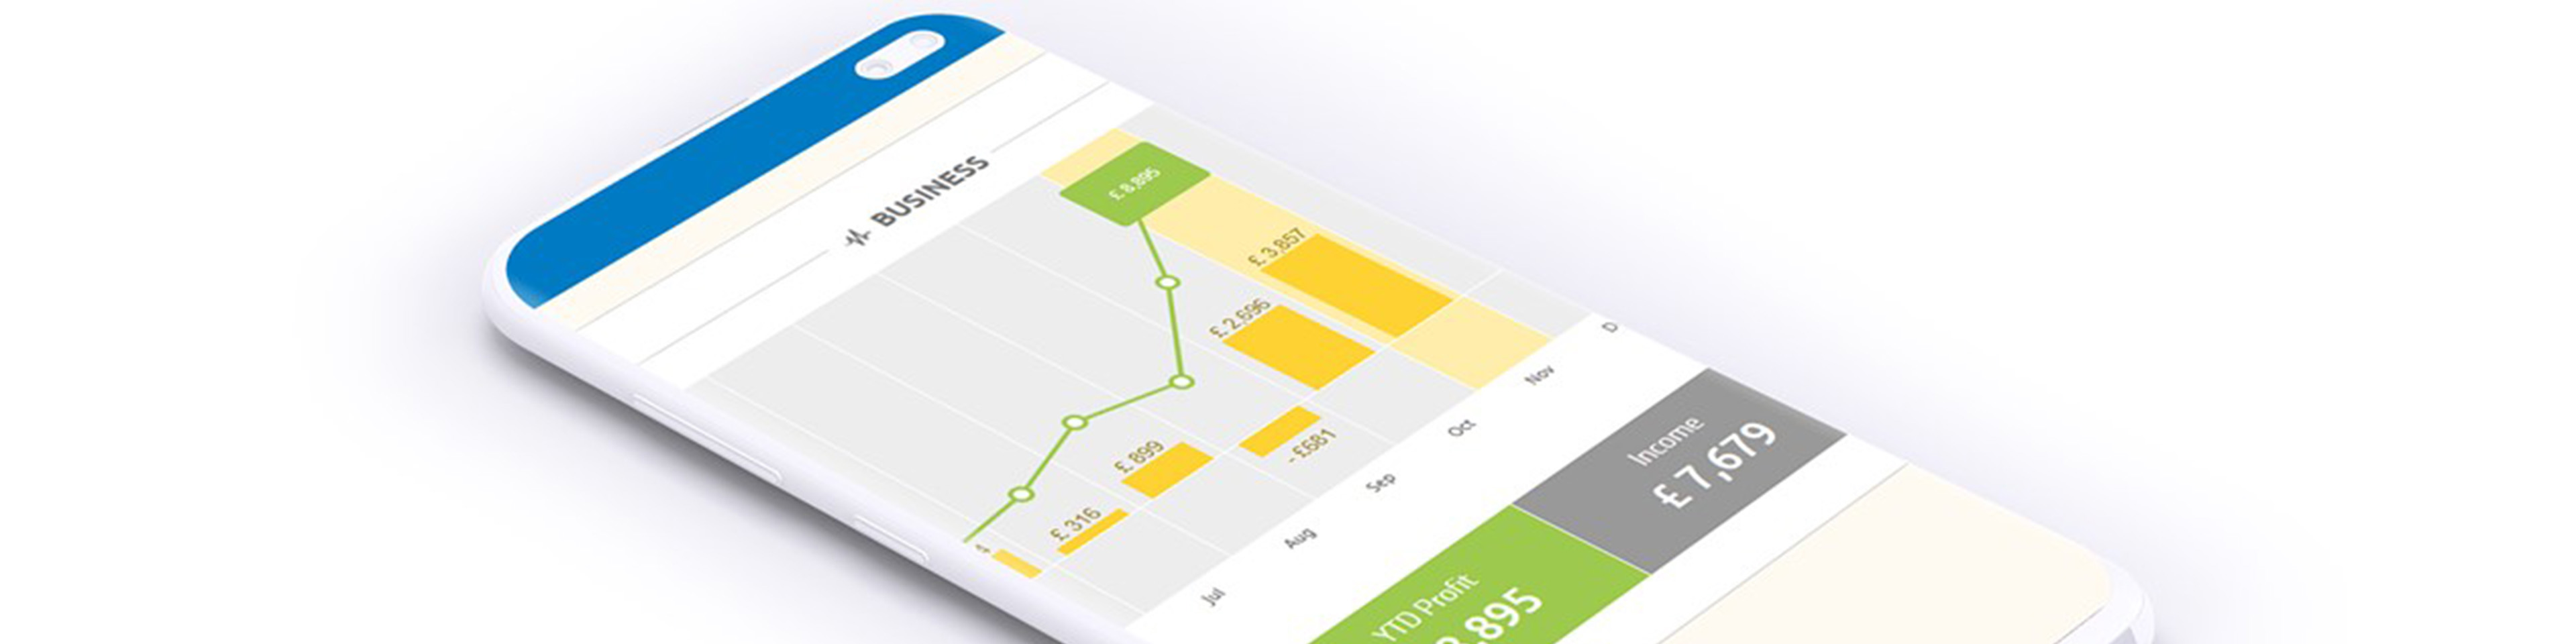 Wolters Kluwer introduces finsit, its cloud-based financial insights platform to the UK